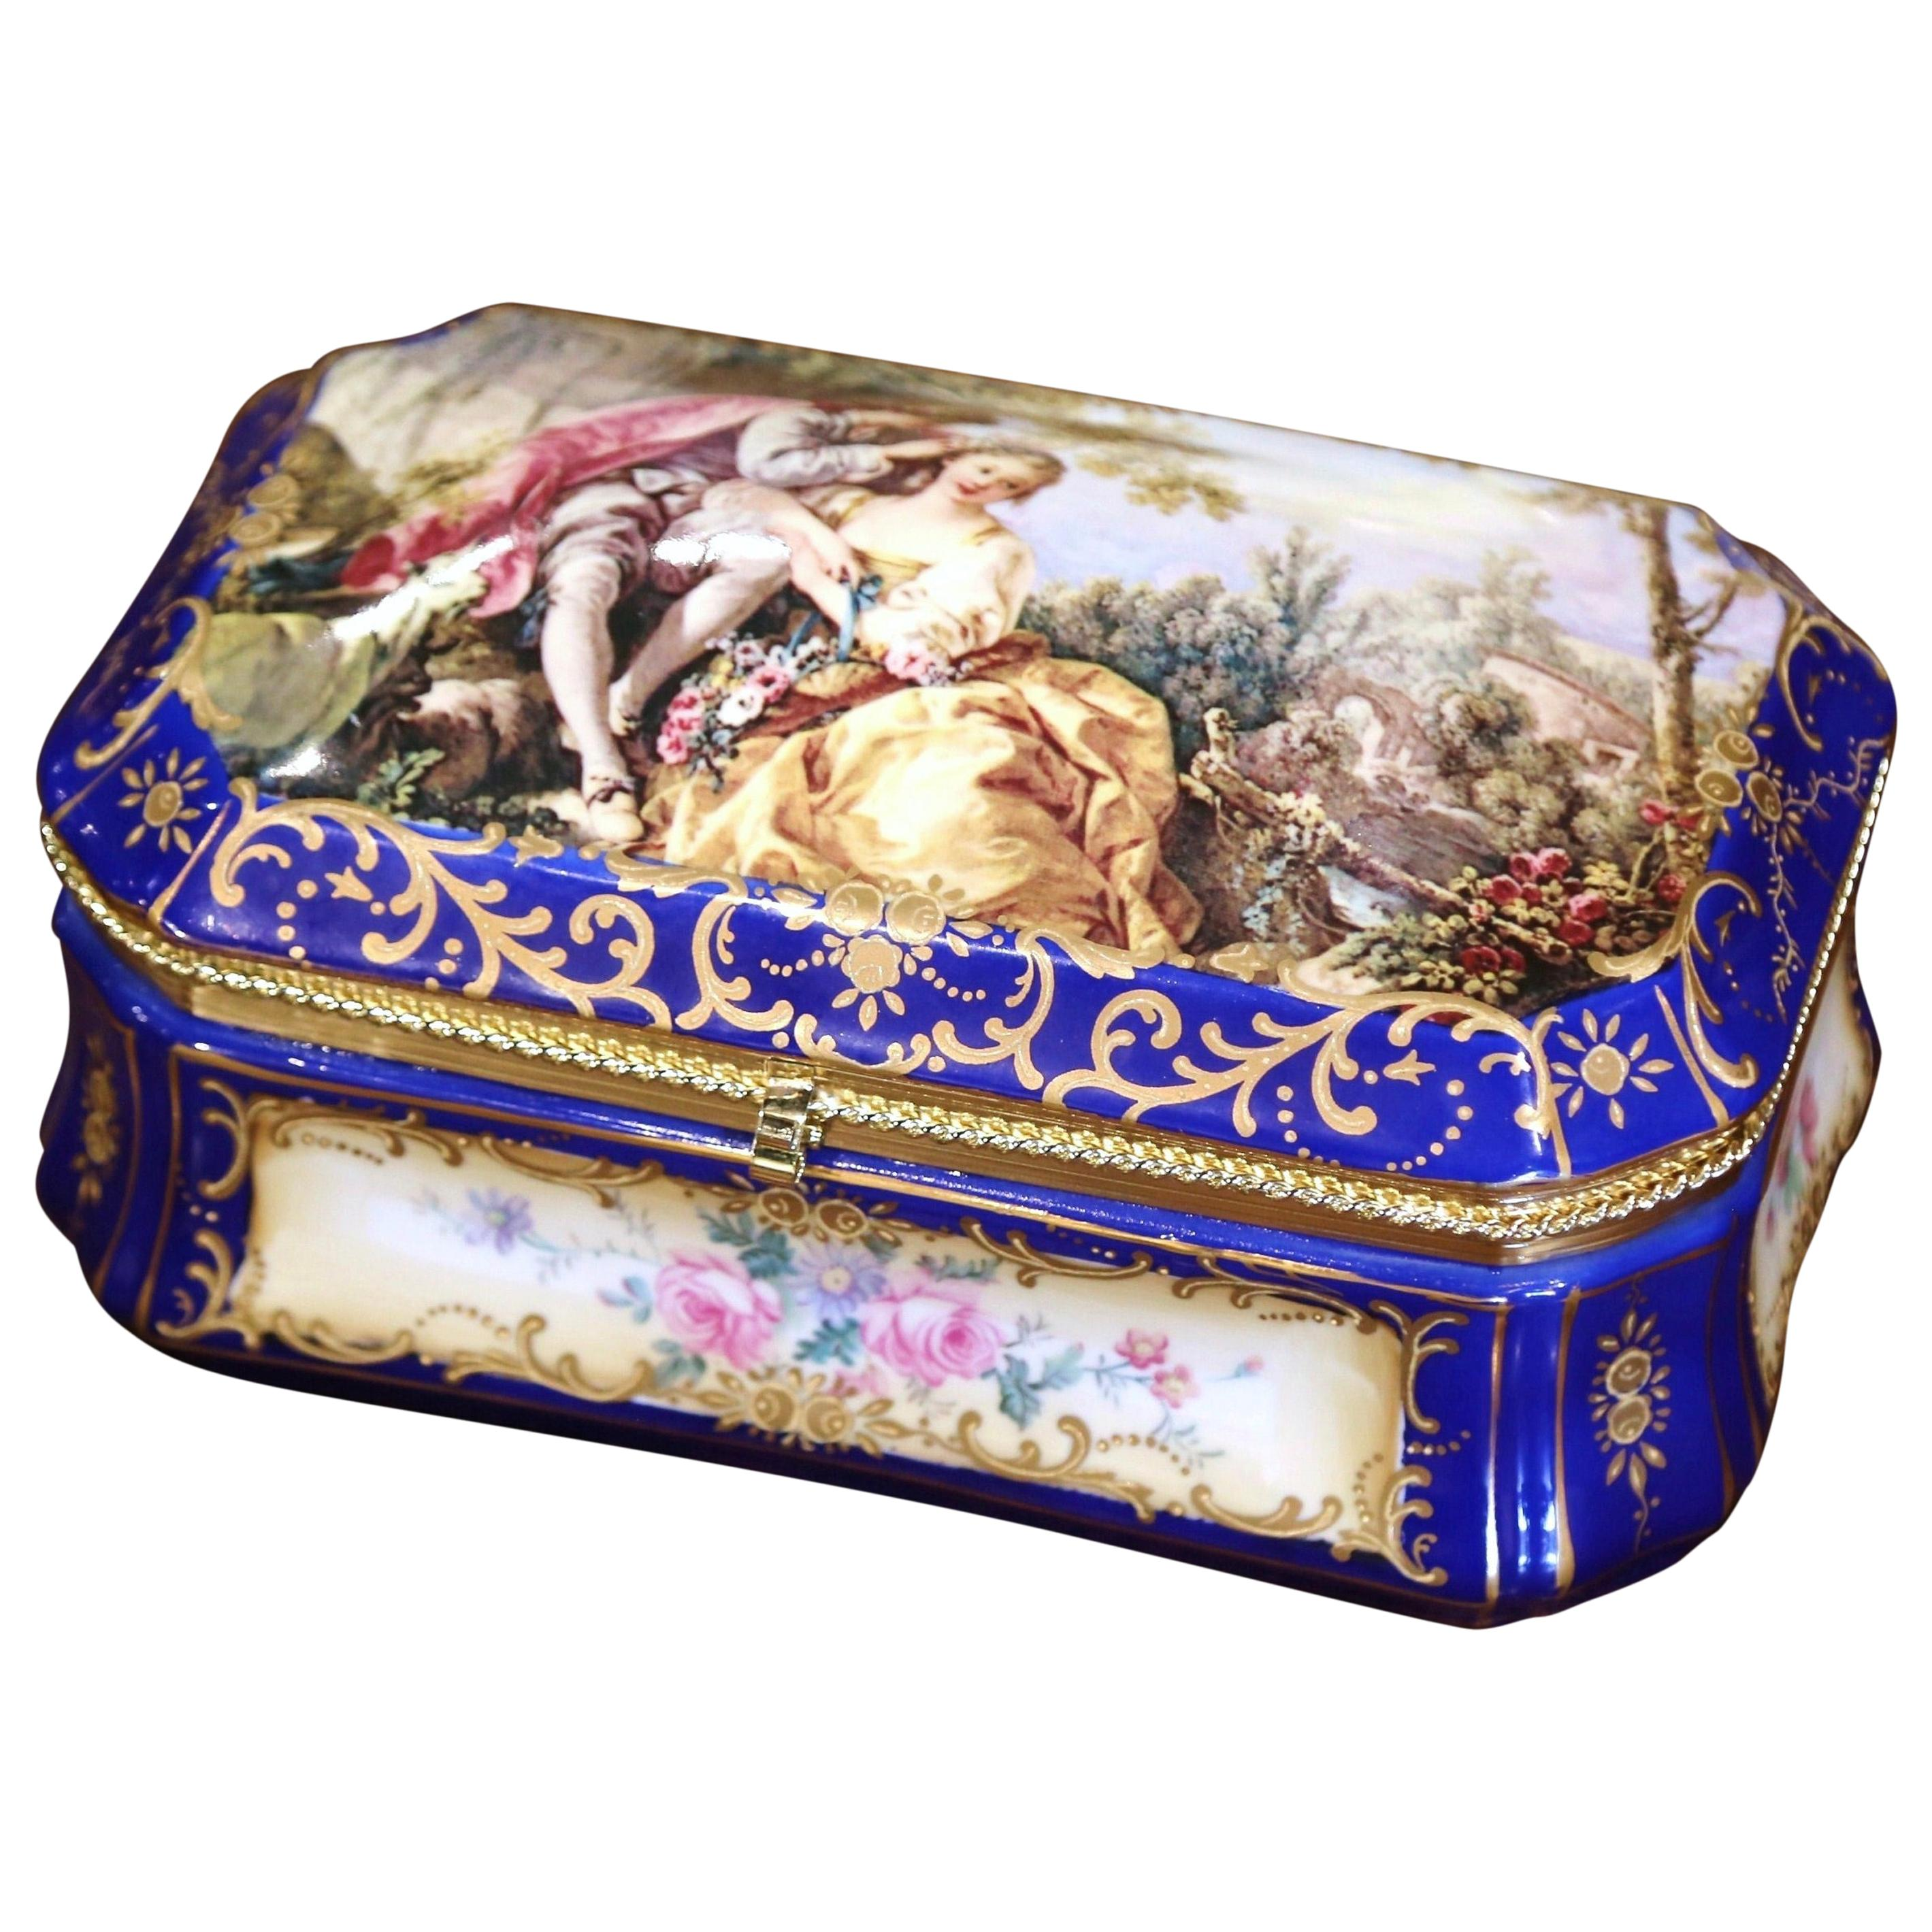 Early 20th Century French Sèvres Painted Porcelain and Gilt Brass Jewelry Box